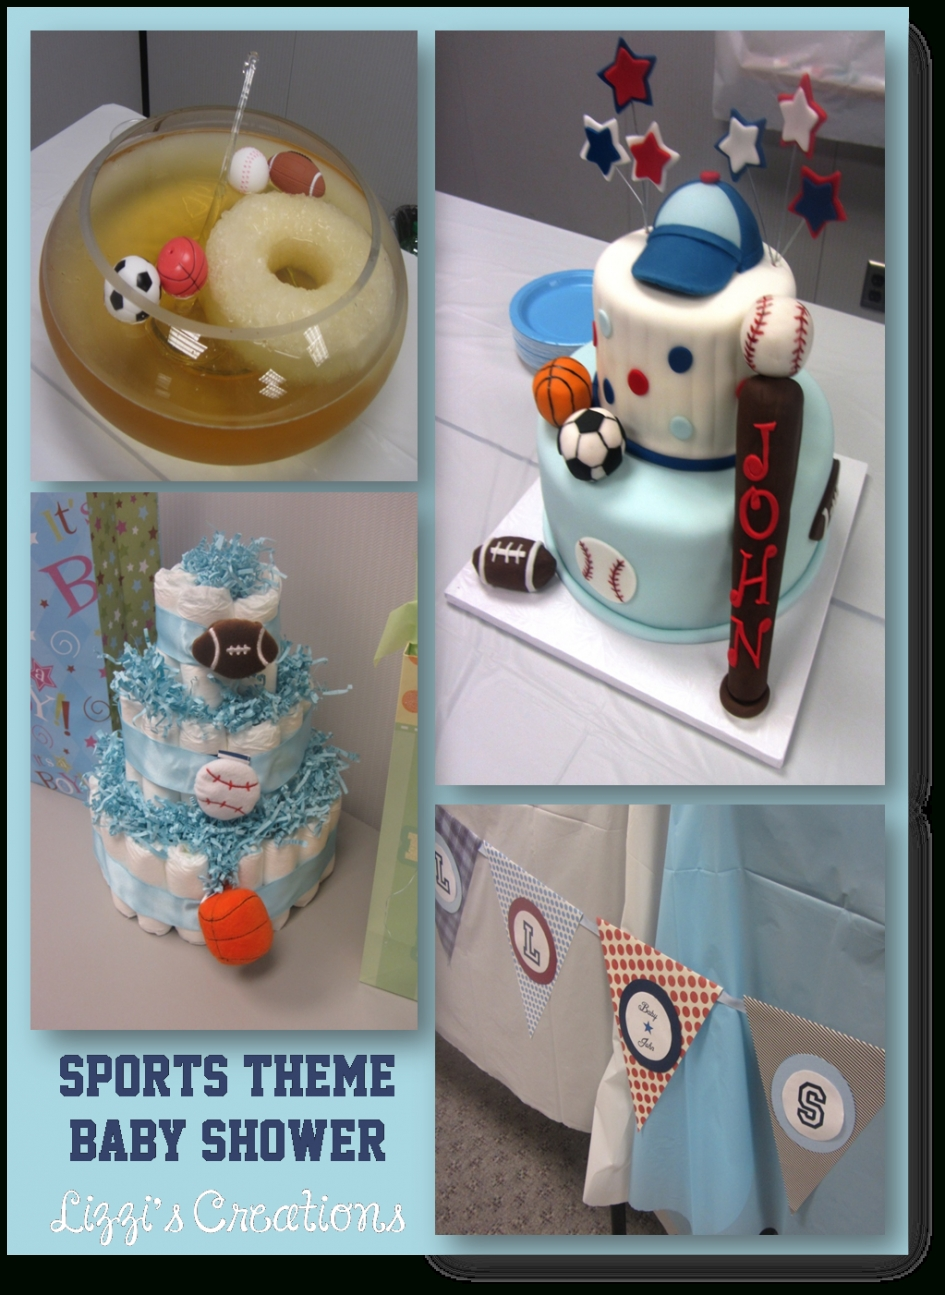 10 Ideal Sports Themed Baby Shower Ideas baby shower sports themed baby shower lizzis creations sports